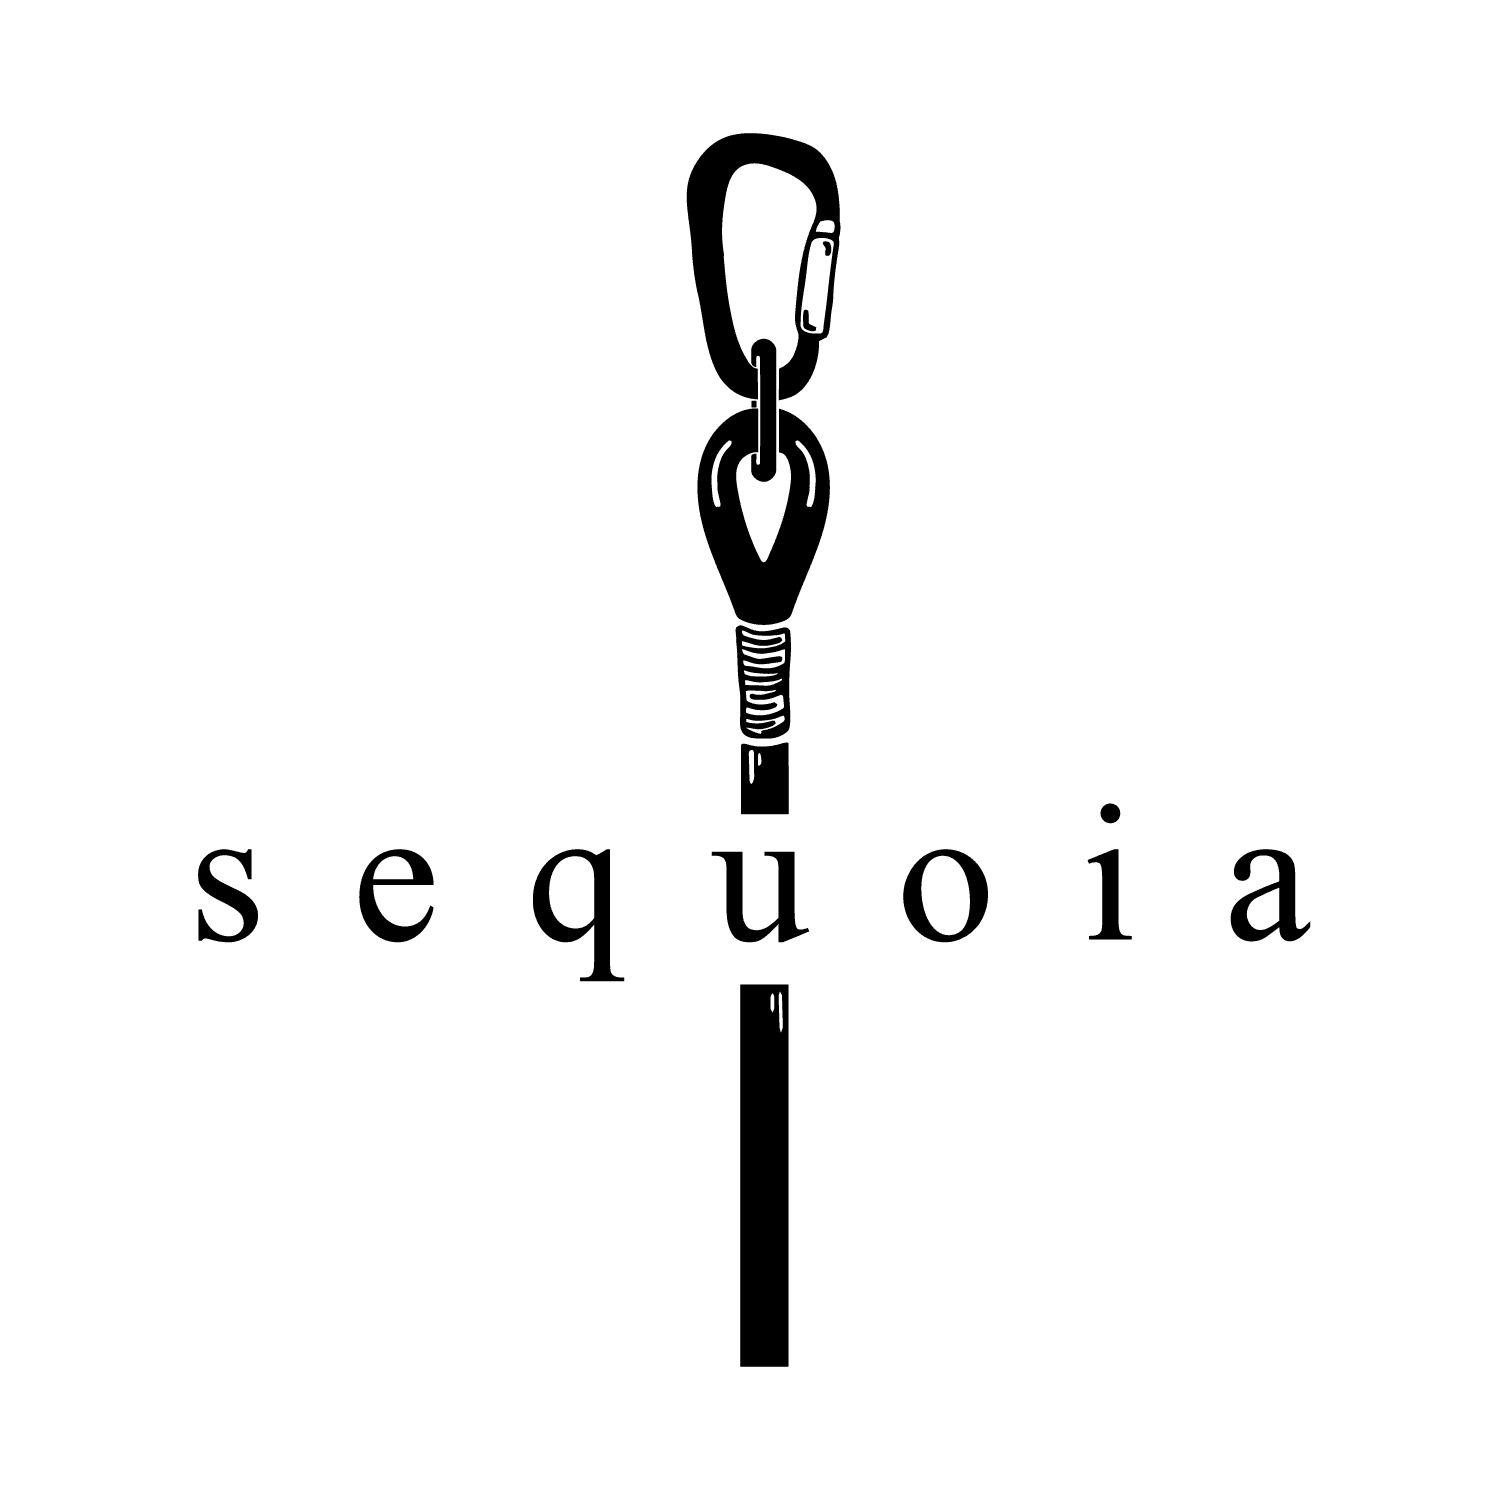 Sequoia Movement